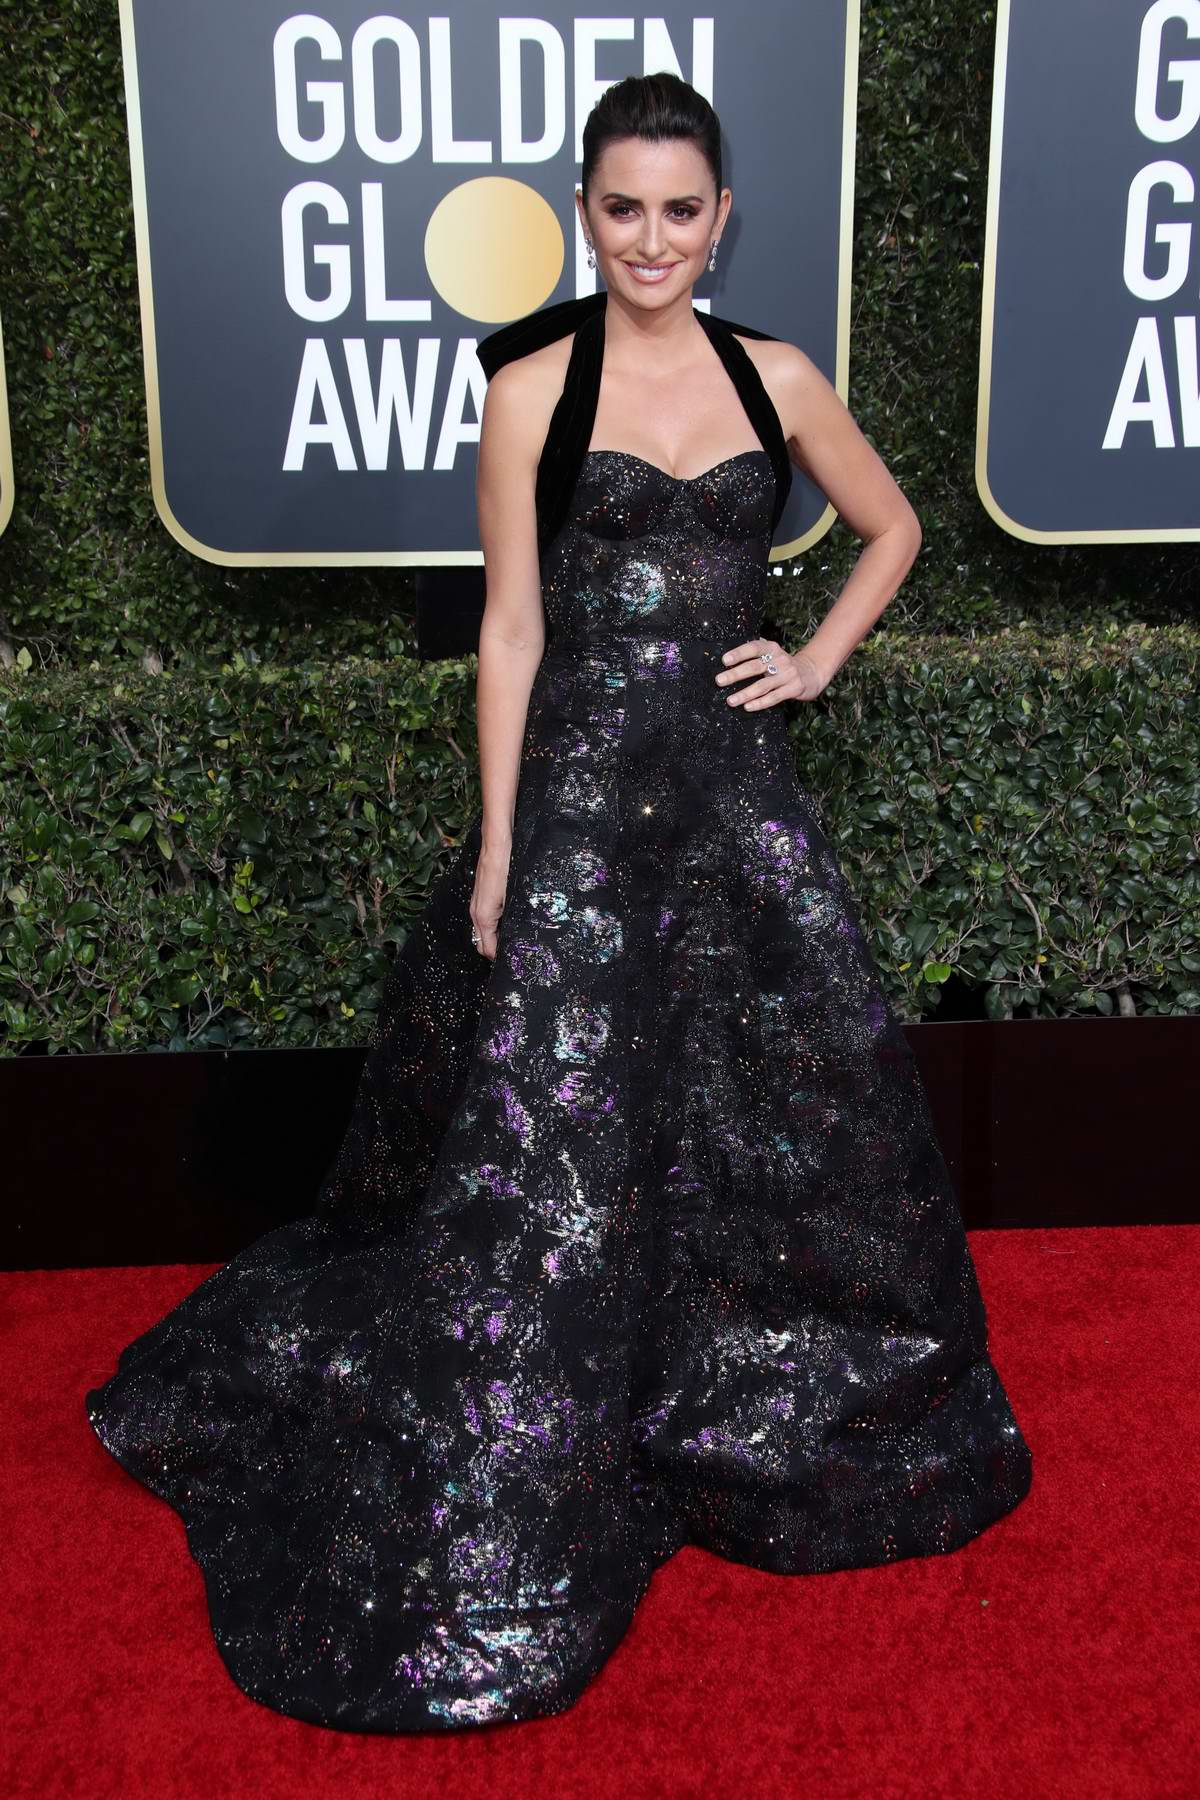 Penelope Cruz attends the 76th Annual Golden Globe Awards held at The Beverly Hilton Hotel in Los Angeles, California